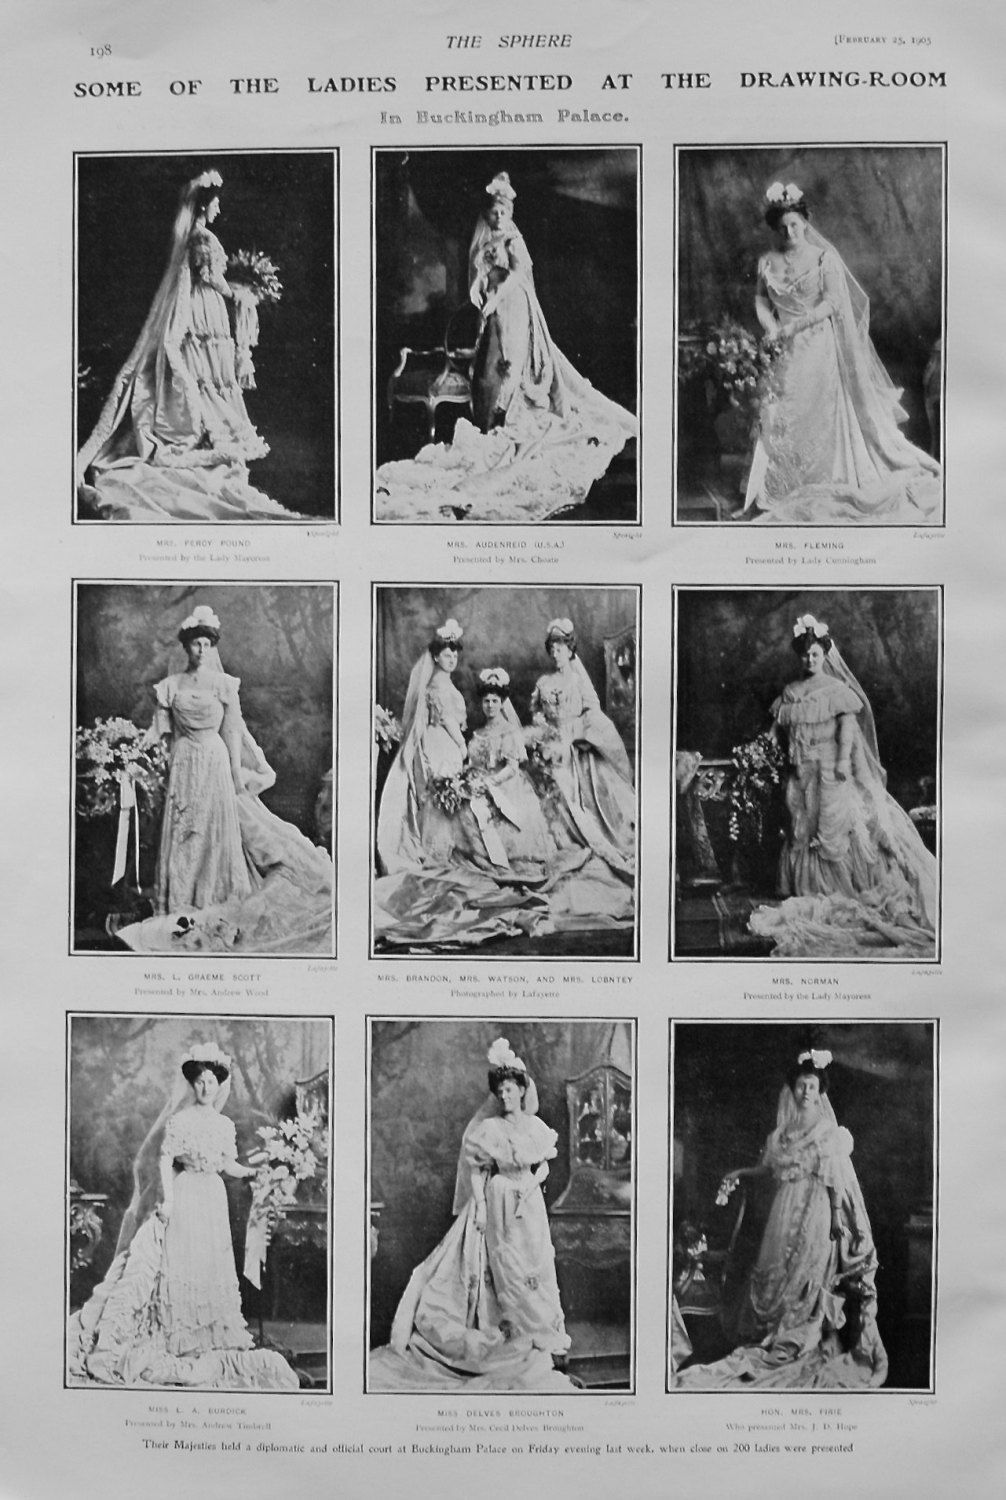 Some of the Ladies Presented at the Drawing-Room in Buckingham Palace. 1905